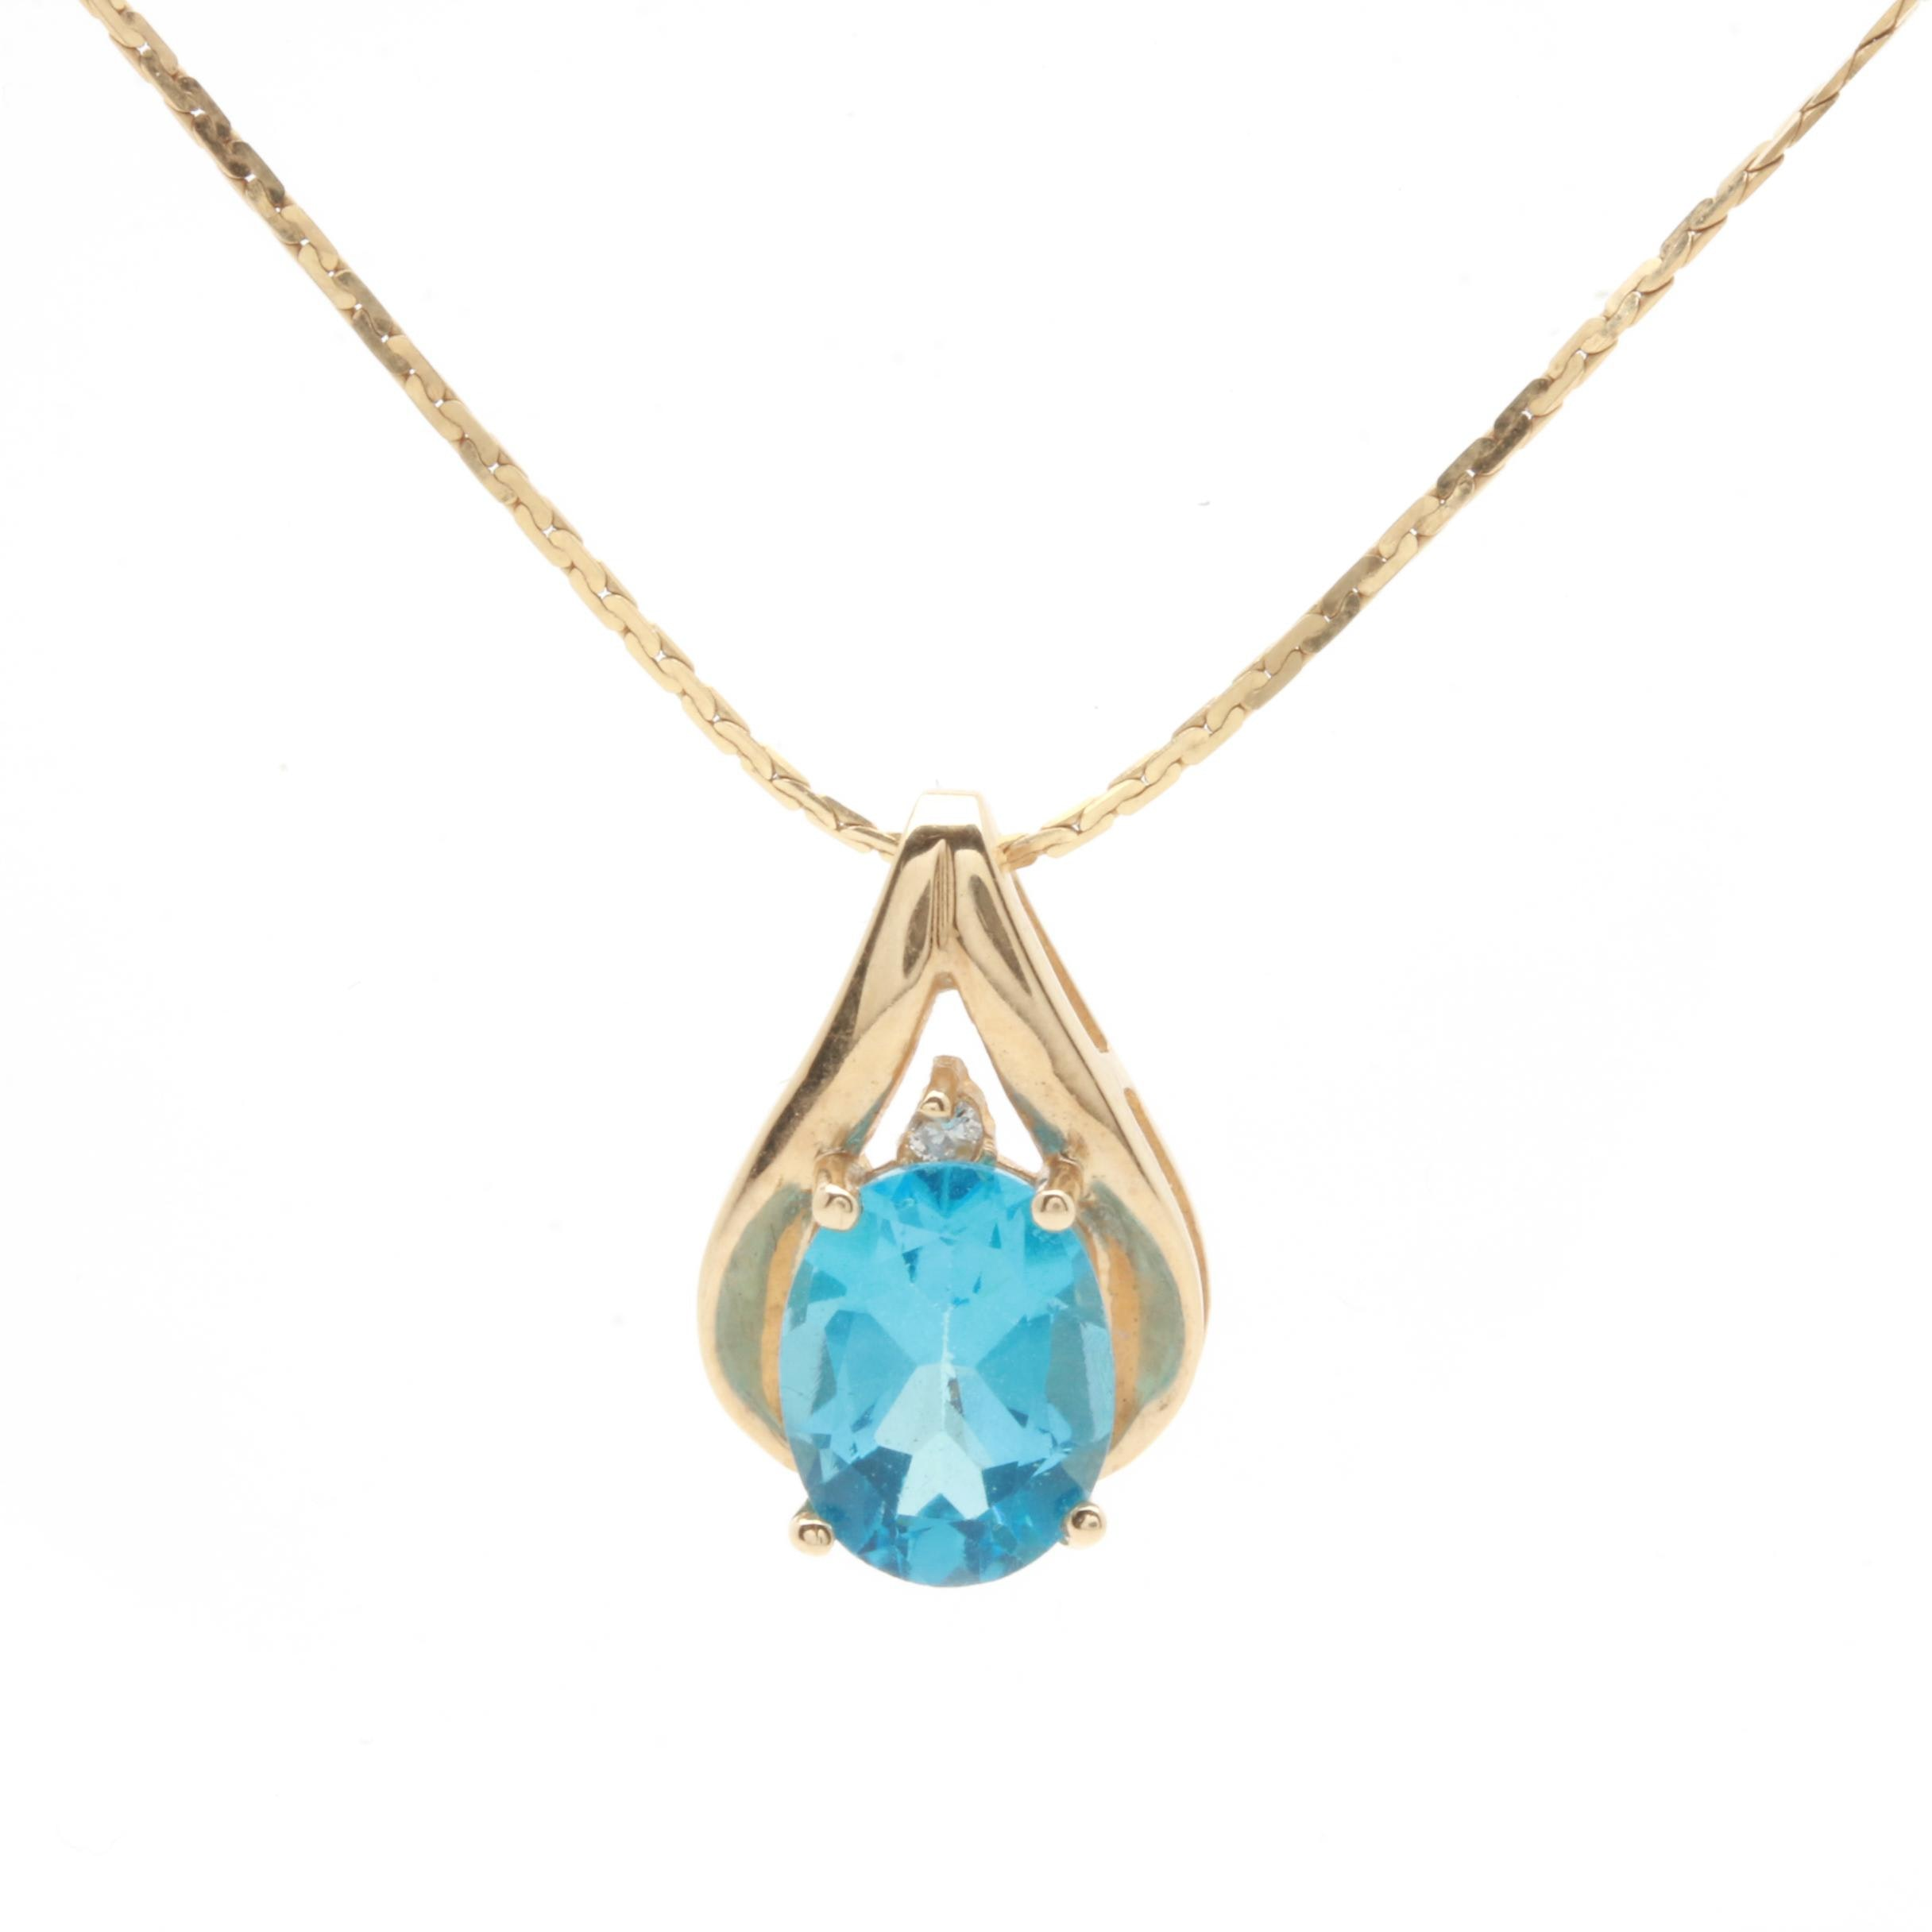 10K and 14K Yellow Gold Blue Topaz and Diamond Pendant Necklace